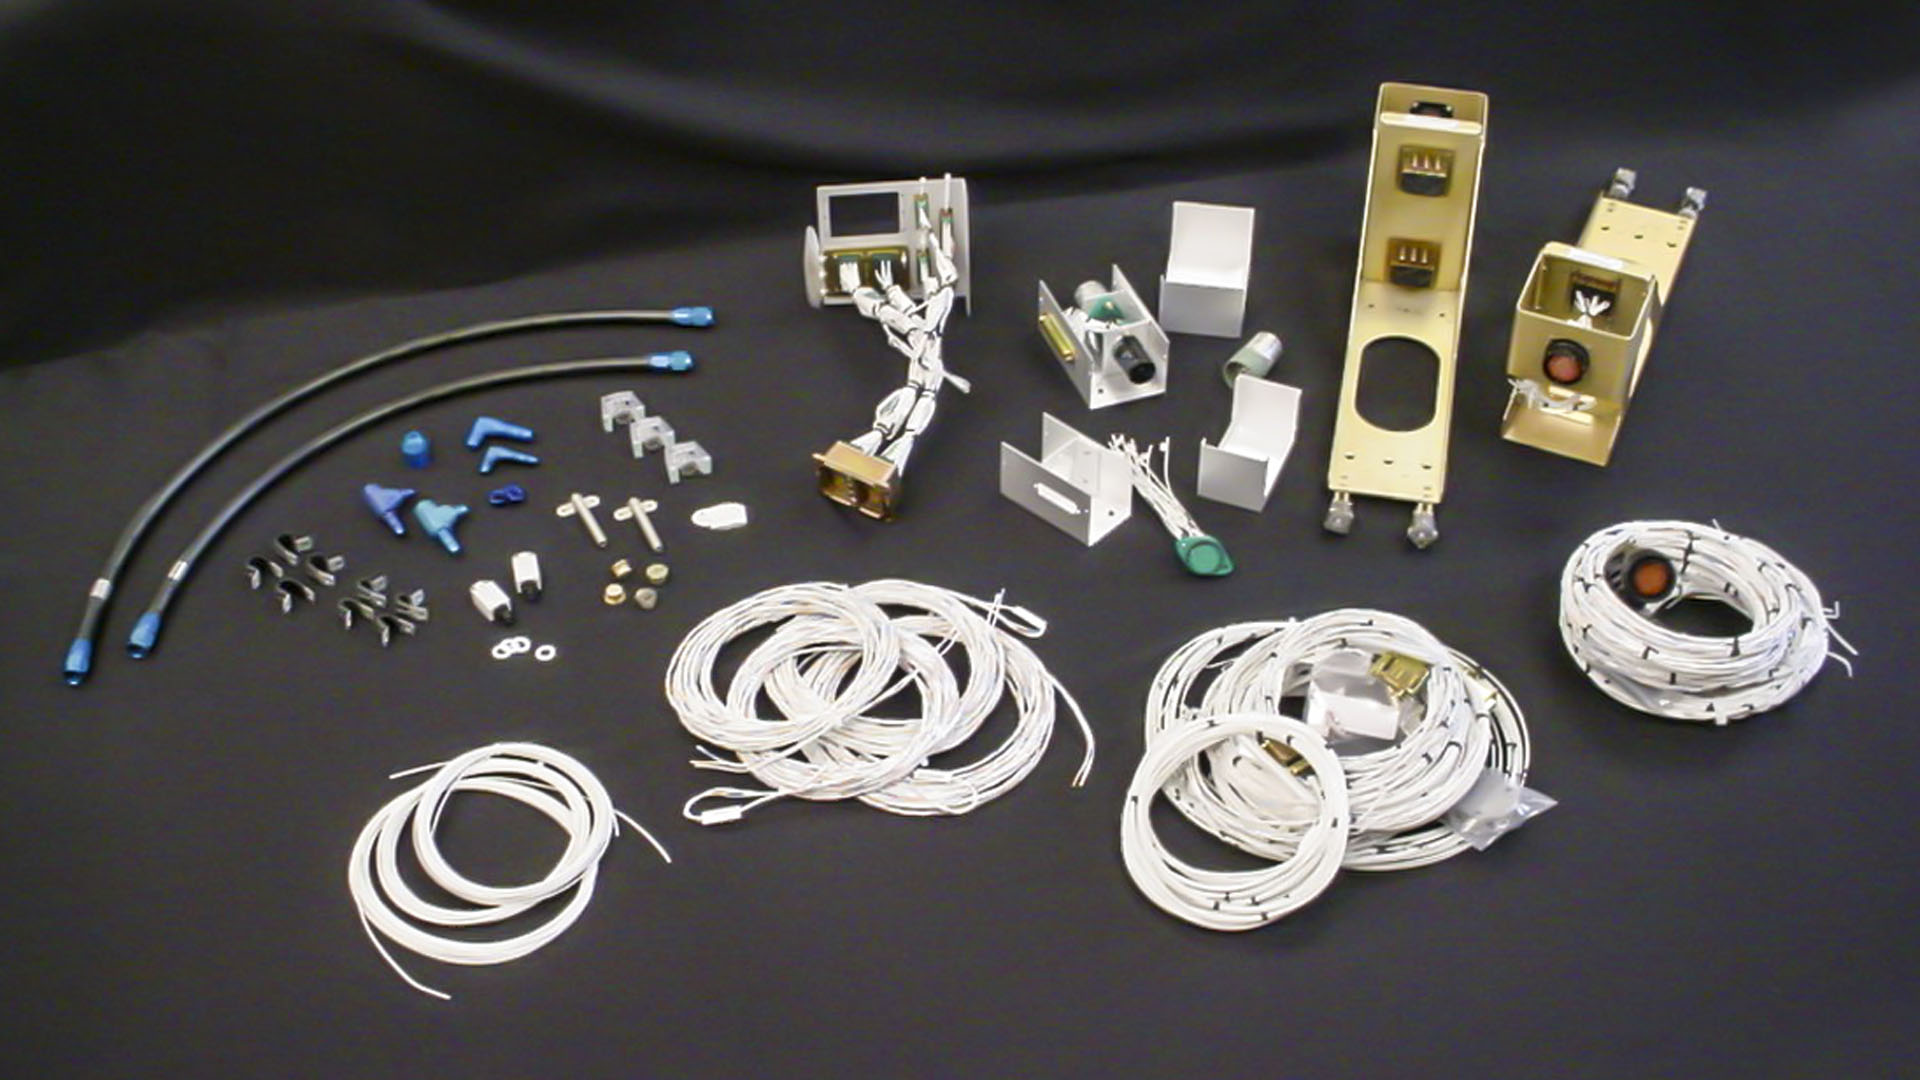 An RVSM avionics installation kit